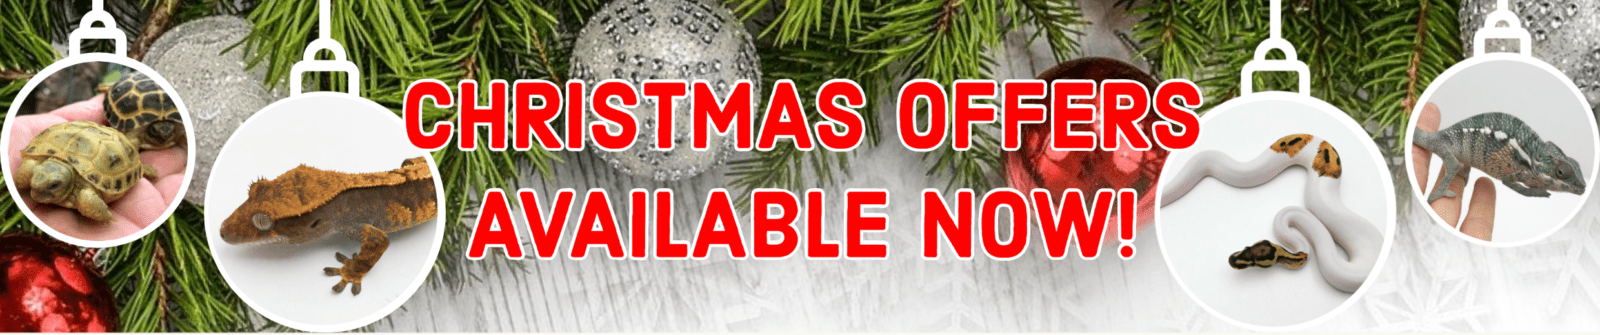 Blackpool Christmas offers link to offer page